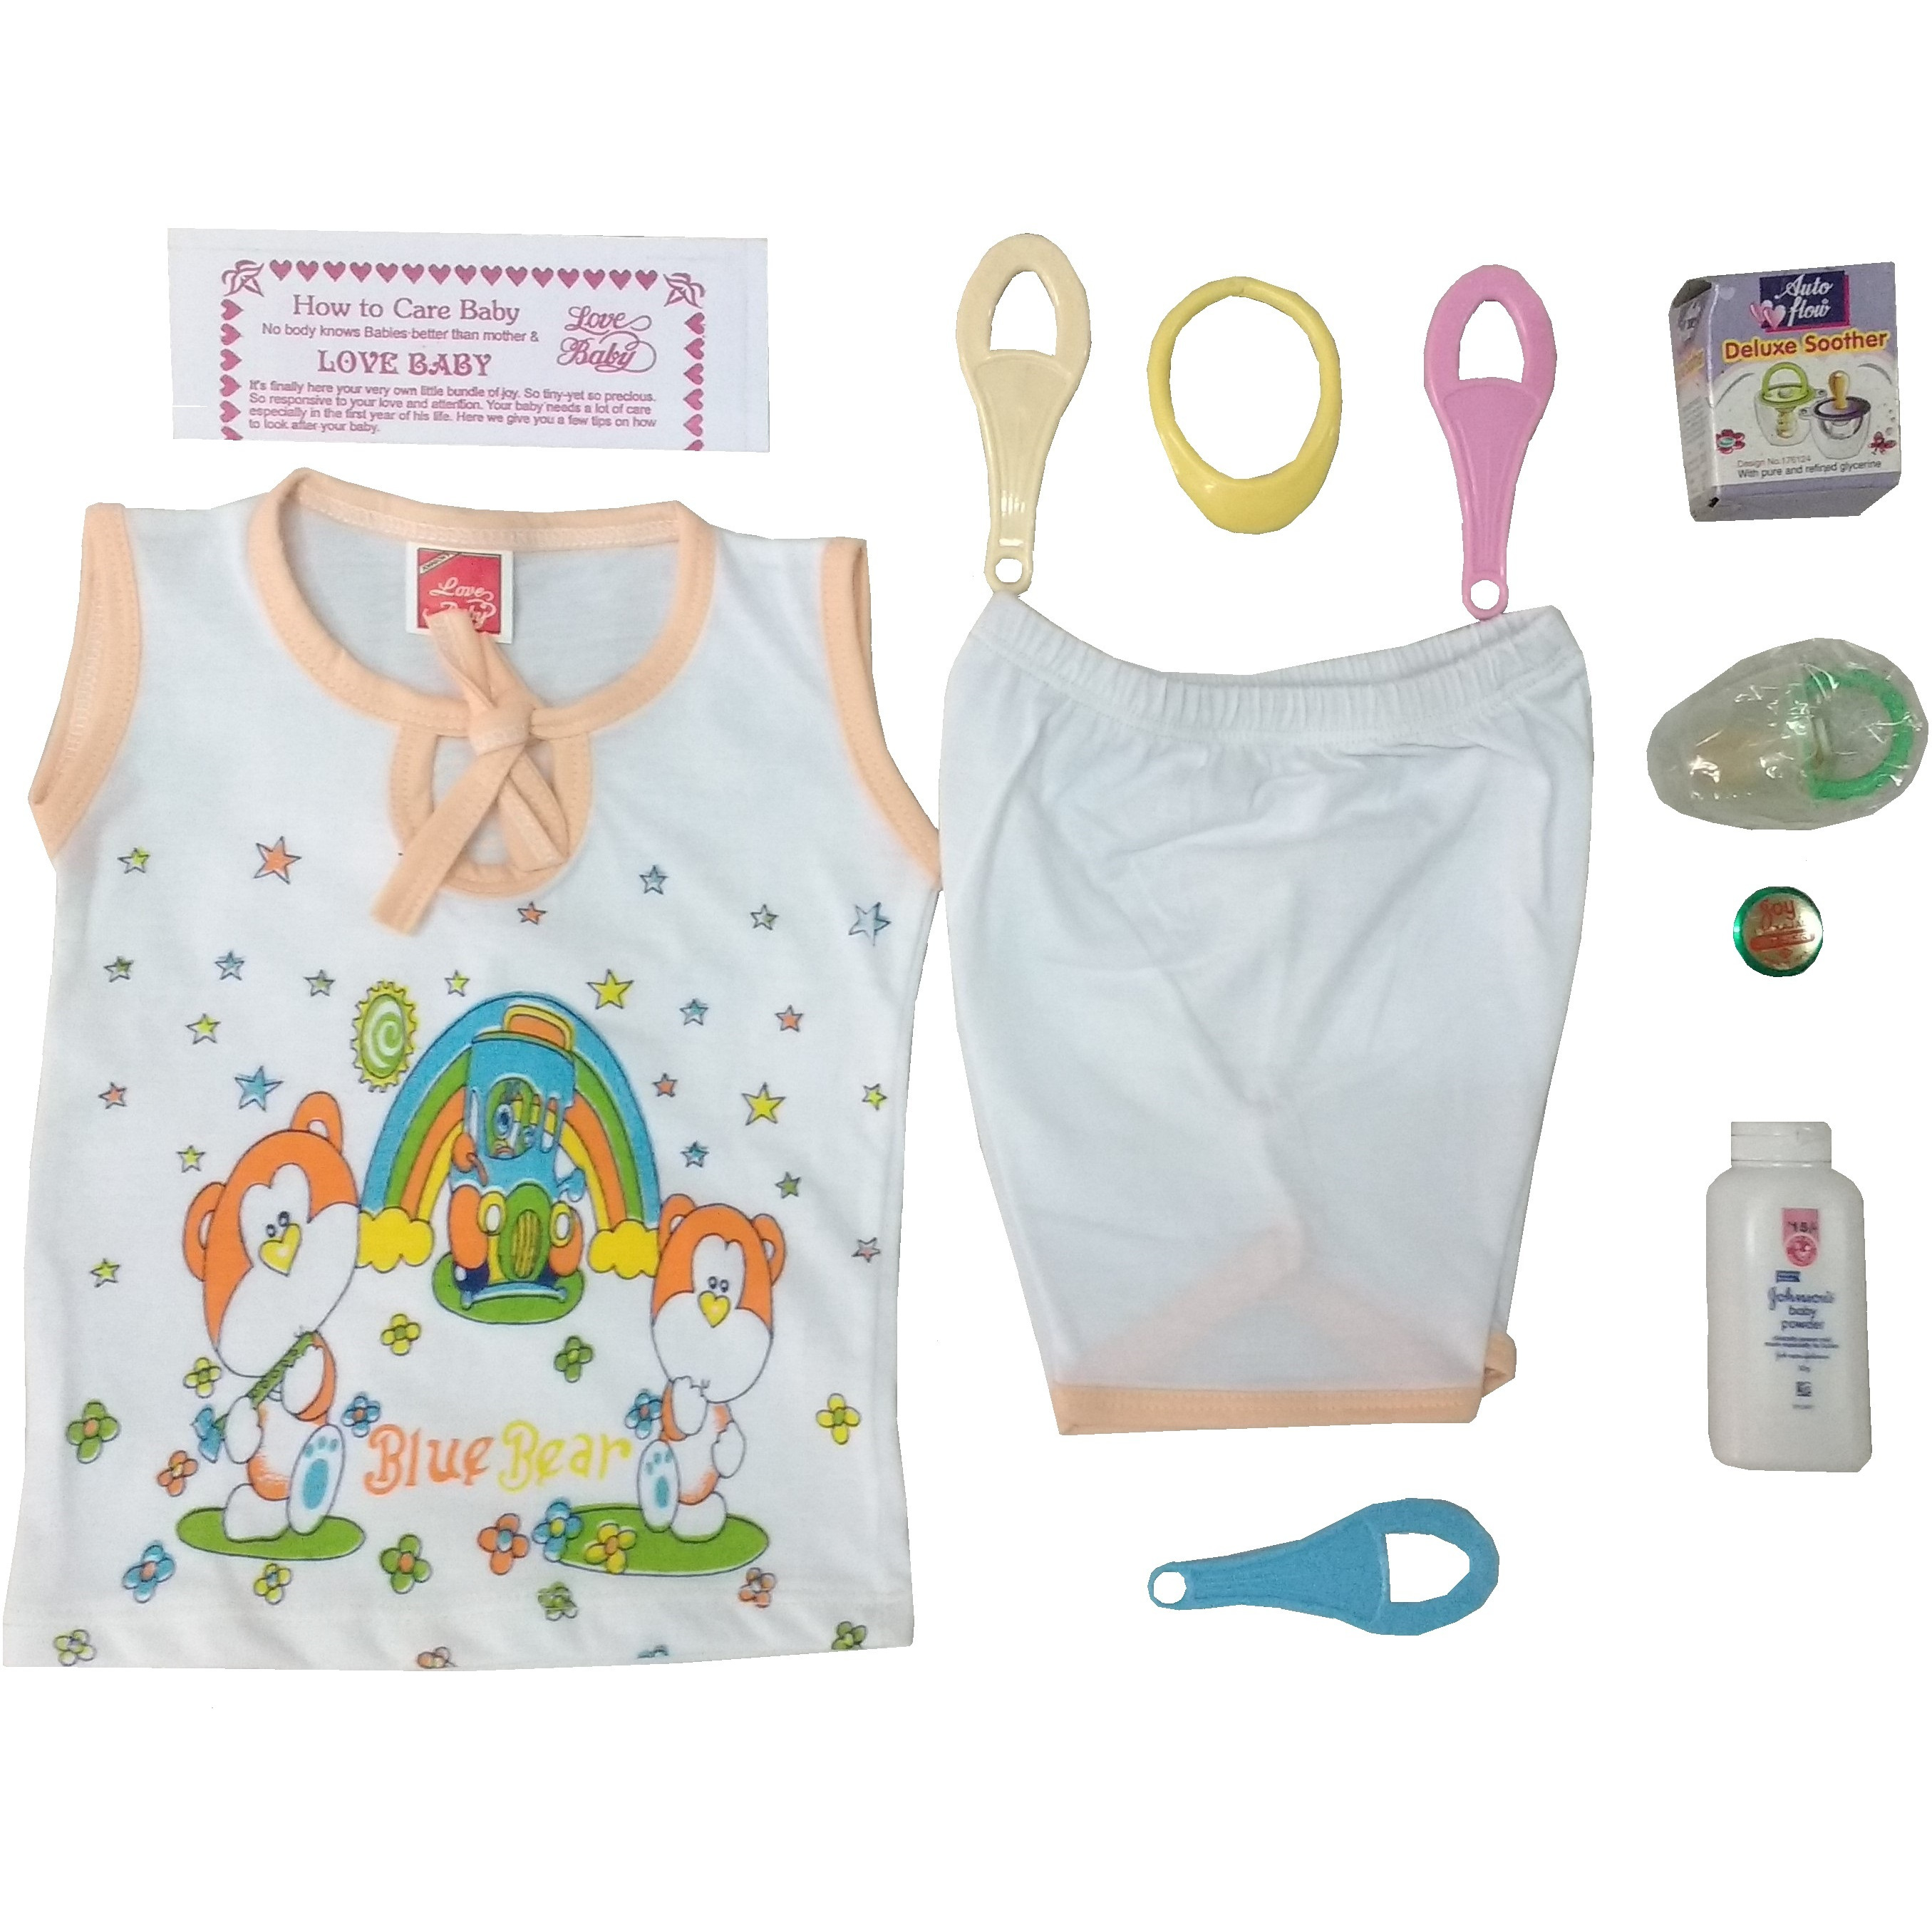 Love Baby Gift Set - King corner Peach